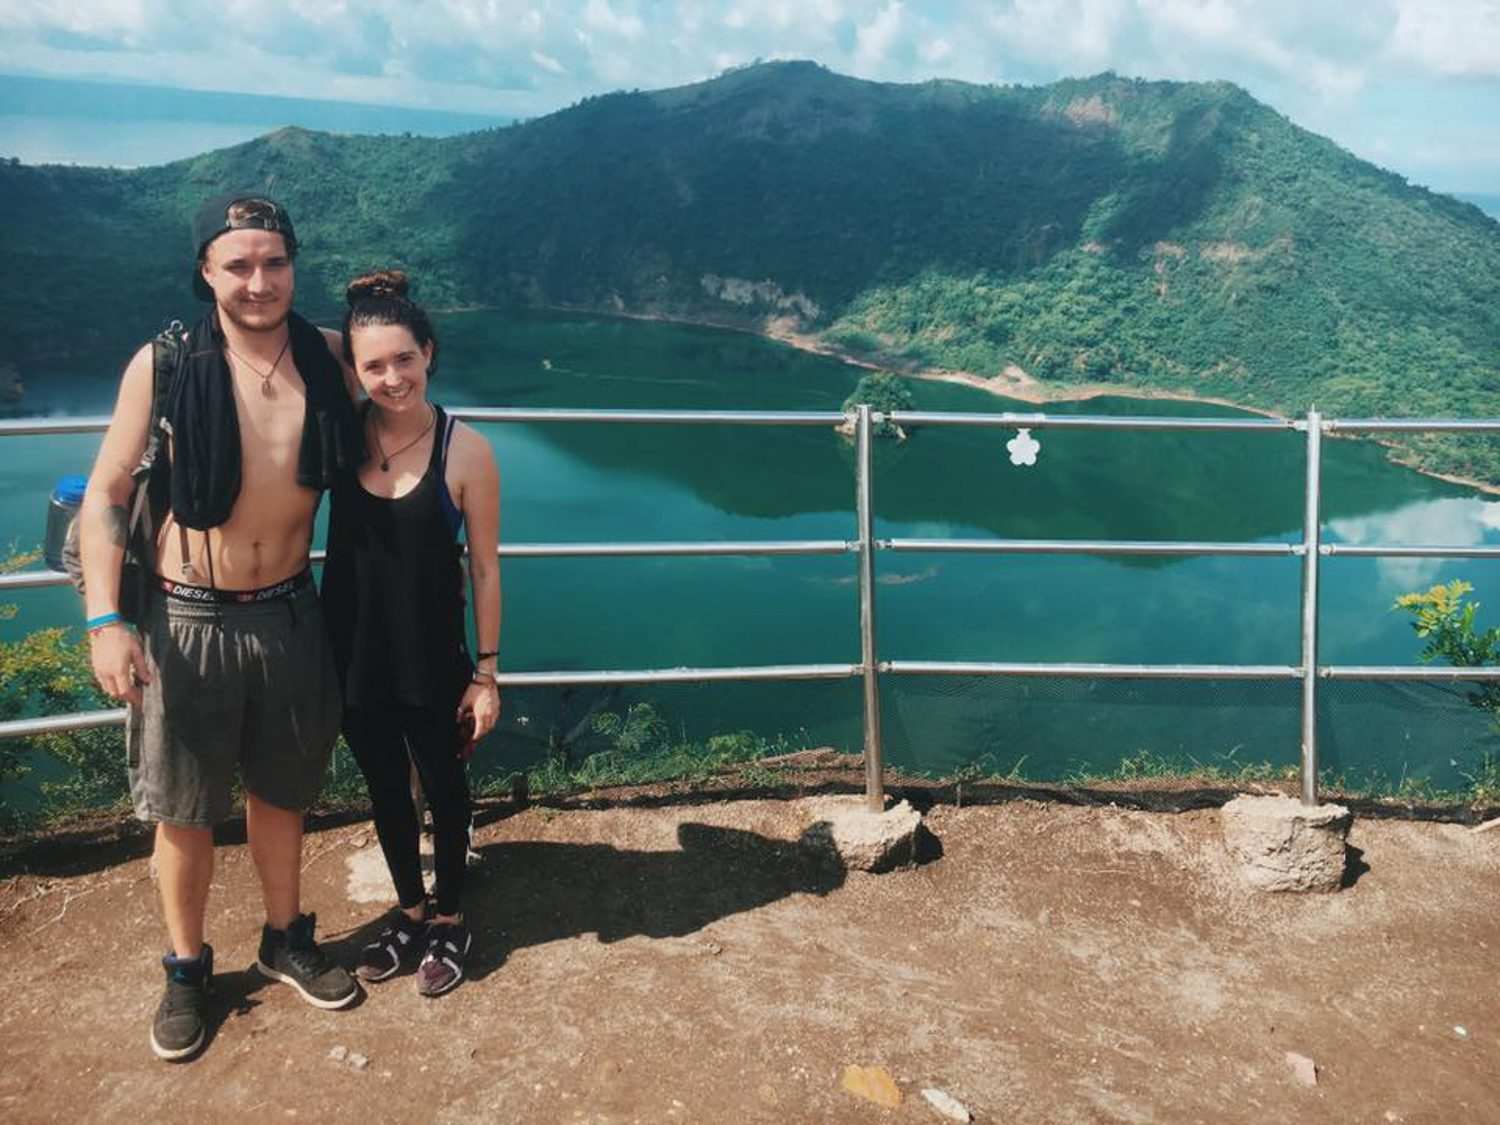 At Taal Vocano Crater in the Philipplines.